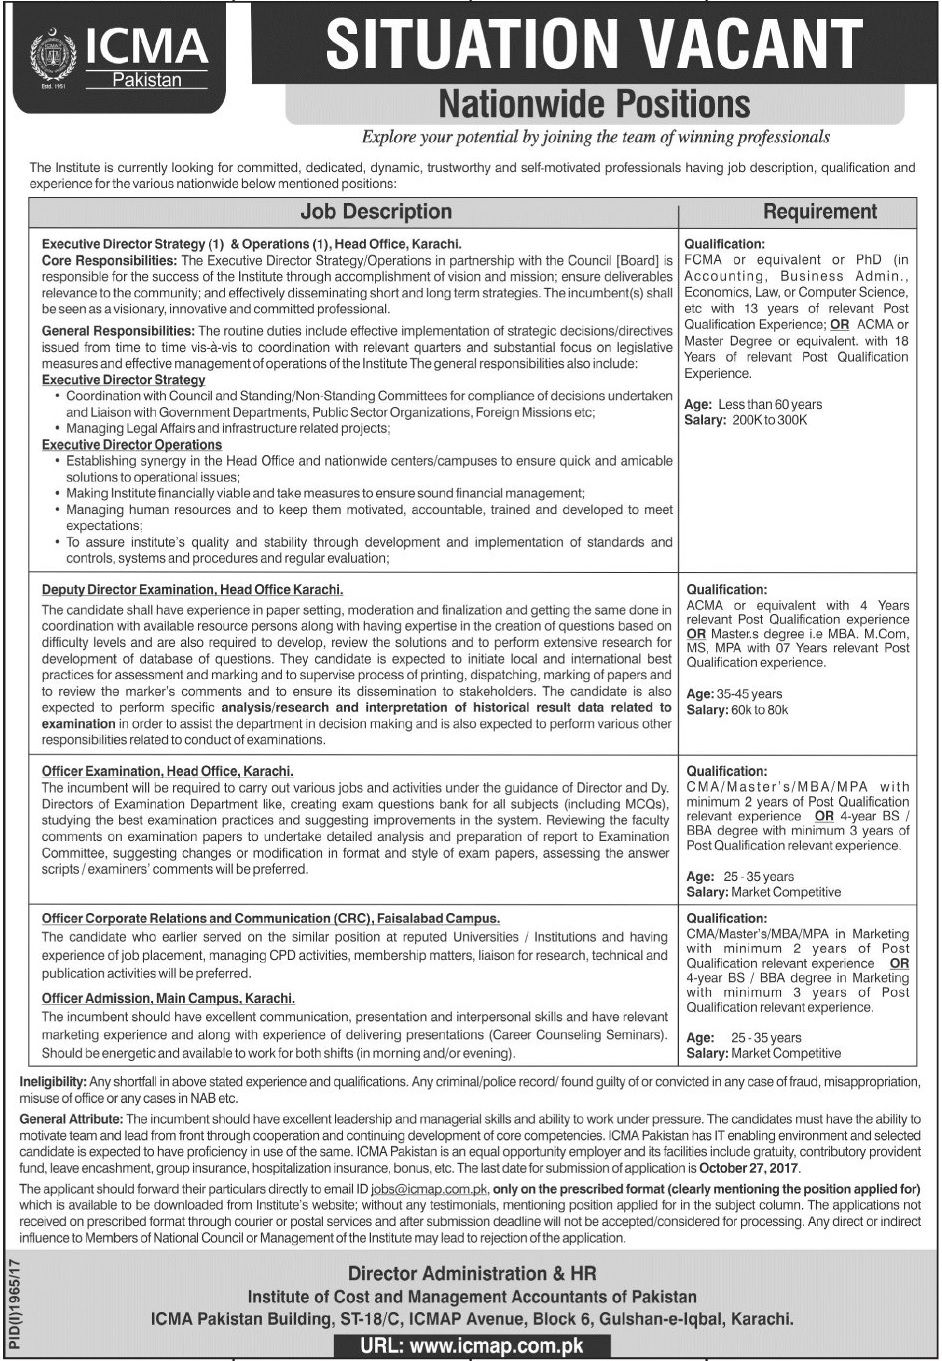 Icma Pakistan Jobs  In Karachi And Faisalabad For Deputy